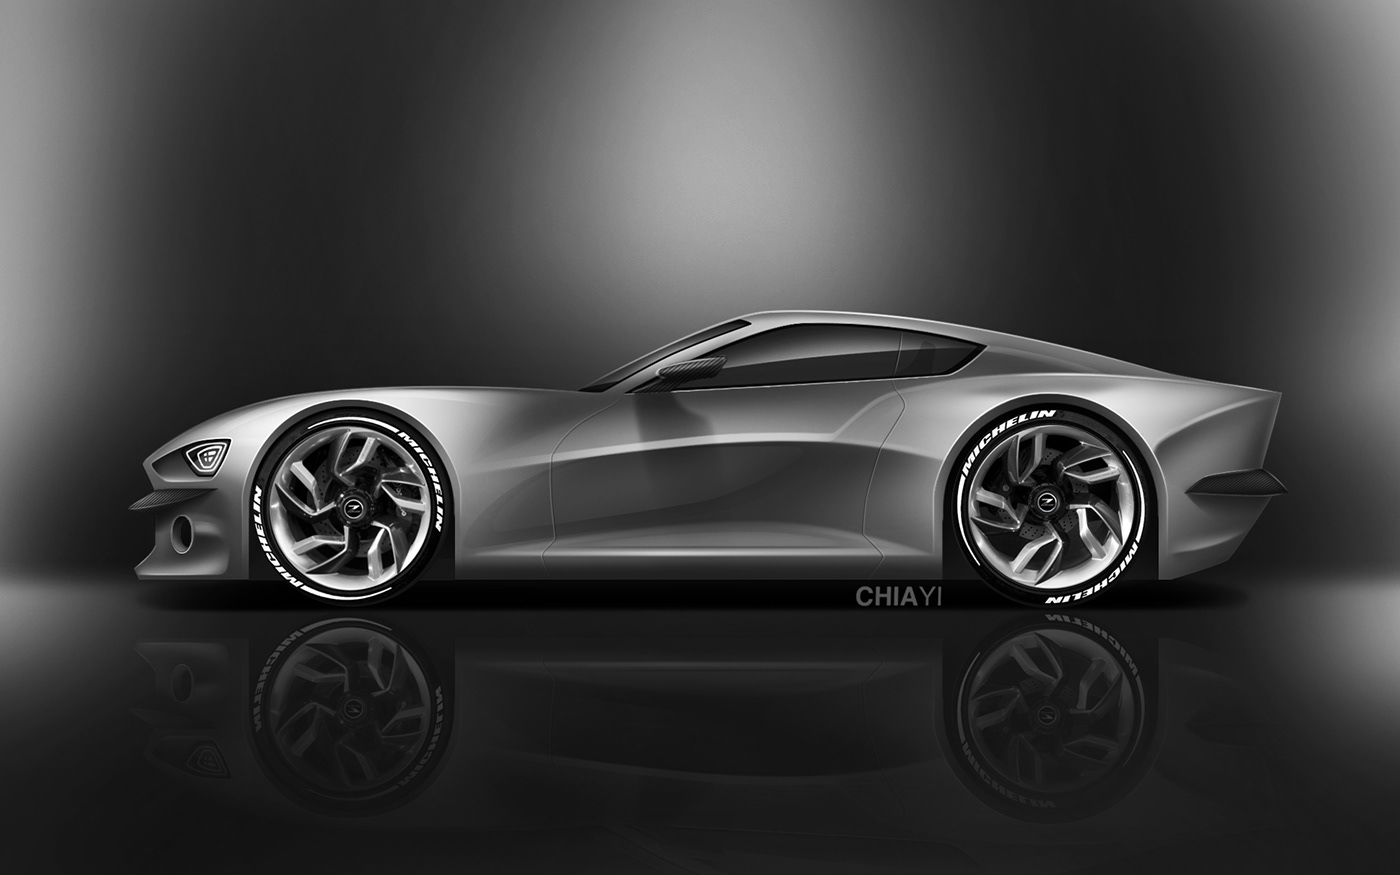 Nissan Fairlady Z Homage Concept on Behance